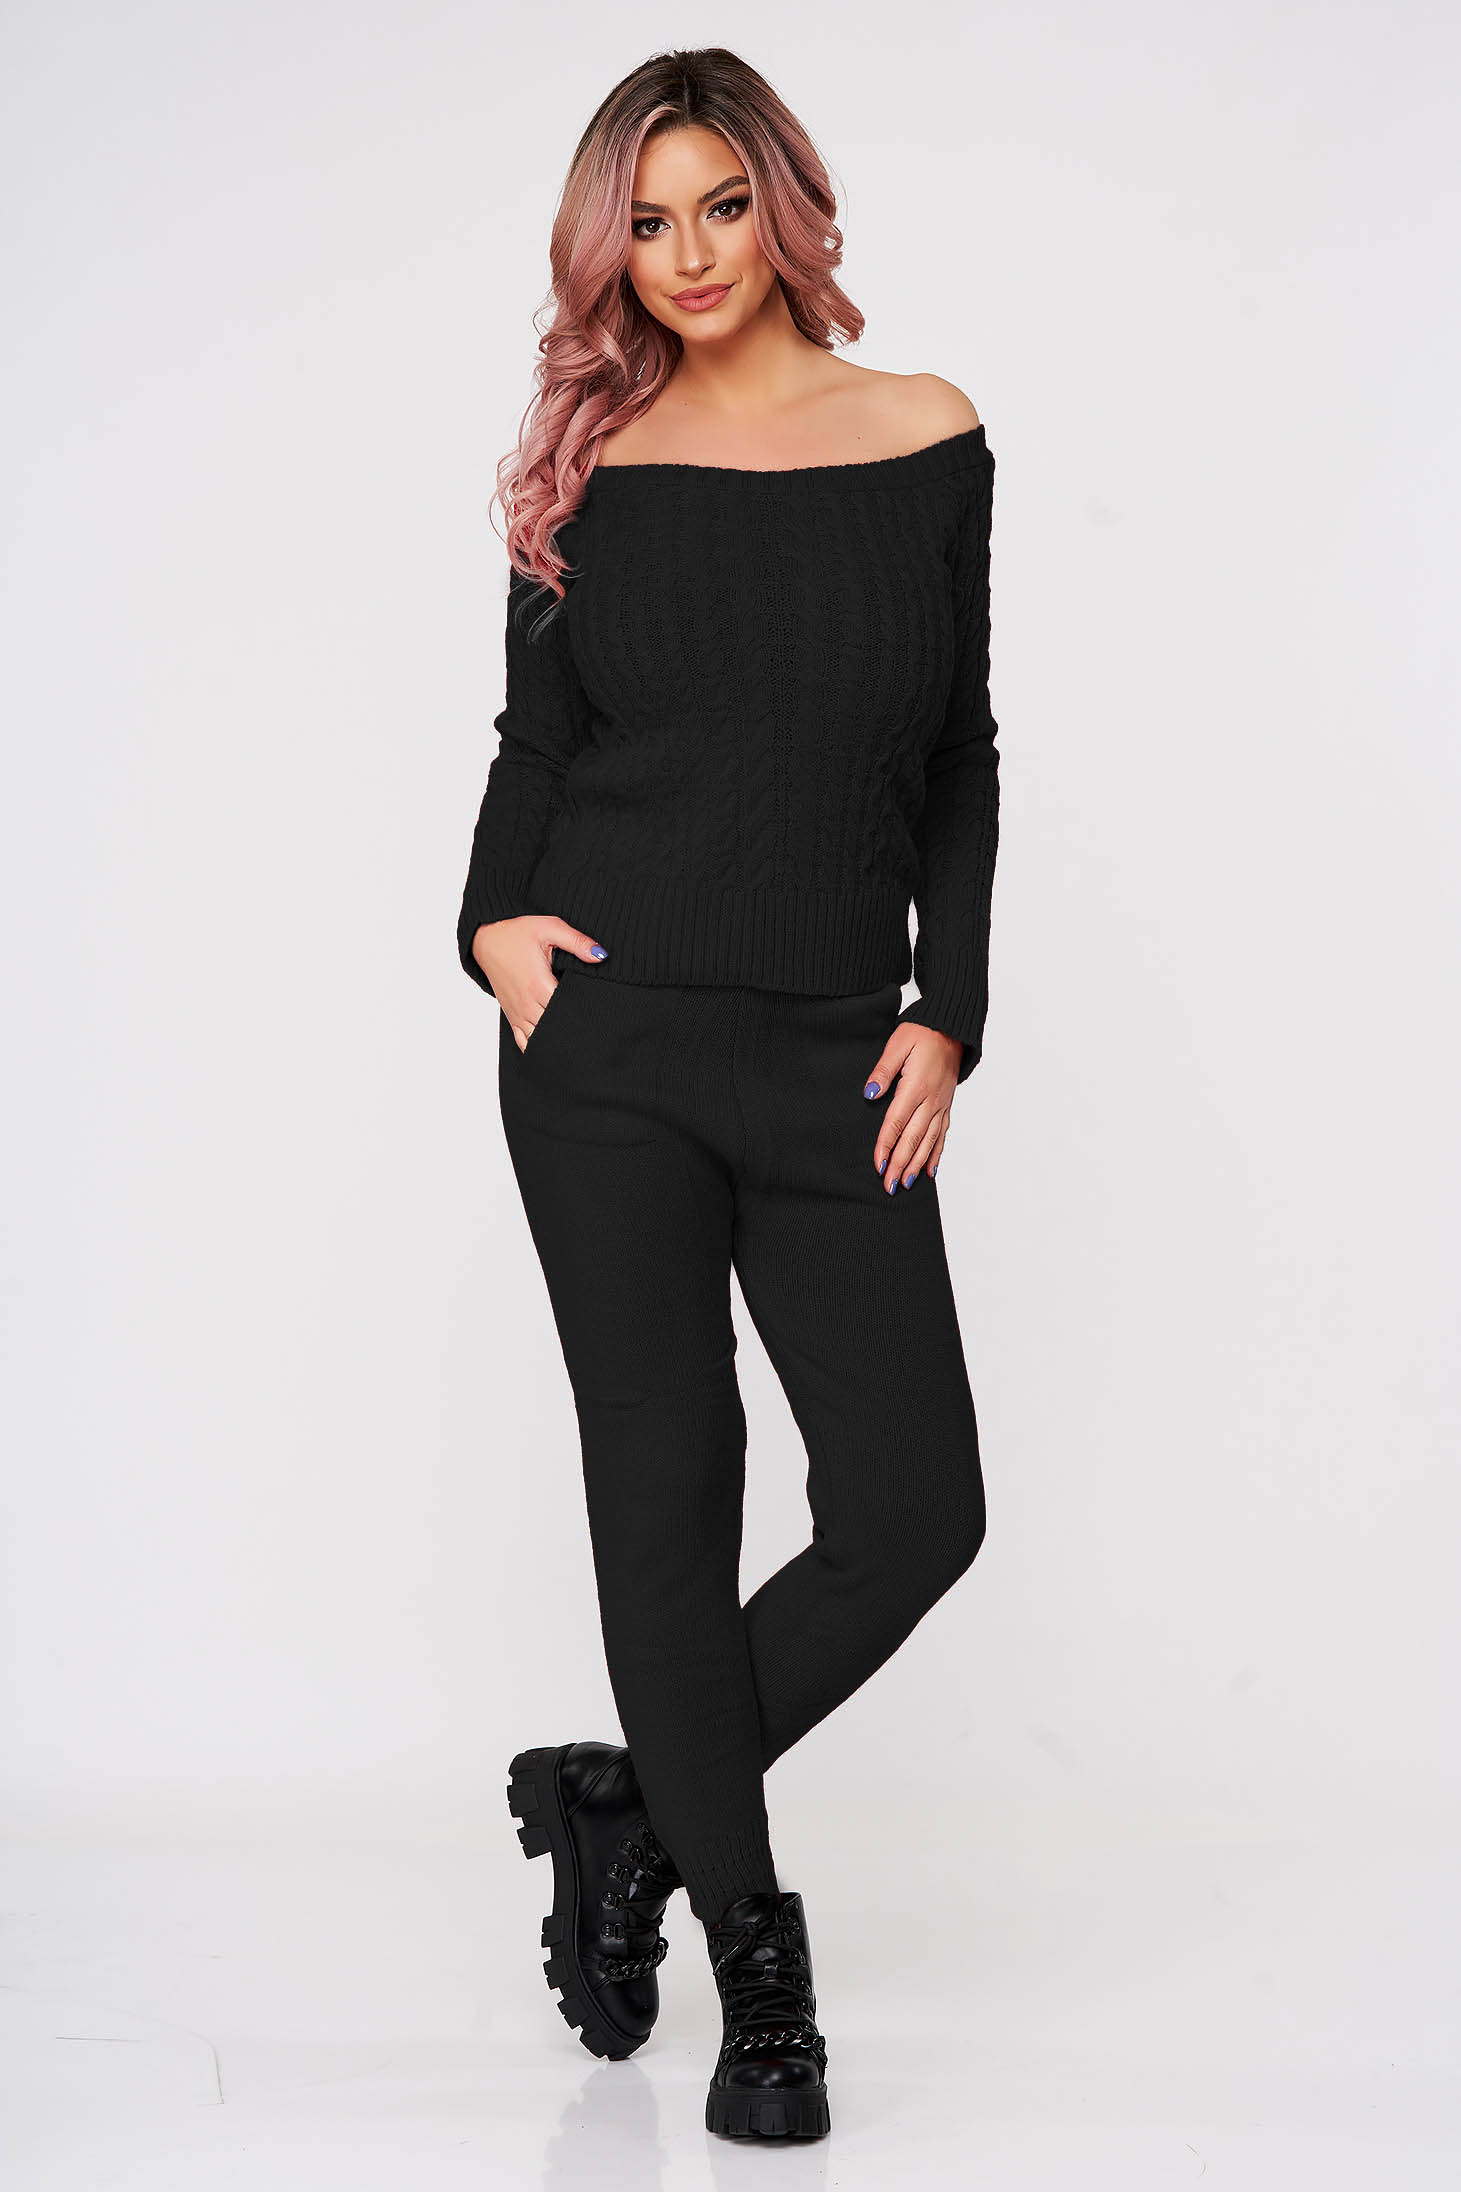 Black sport 2 pieces knitted from two pieces from braided fabric casual